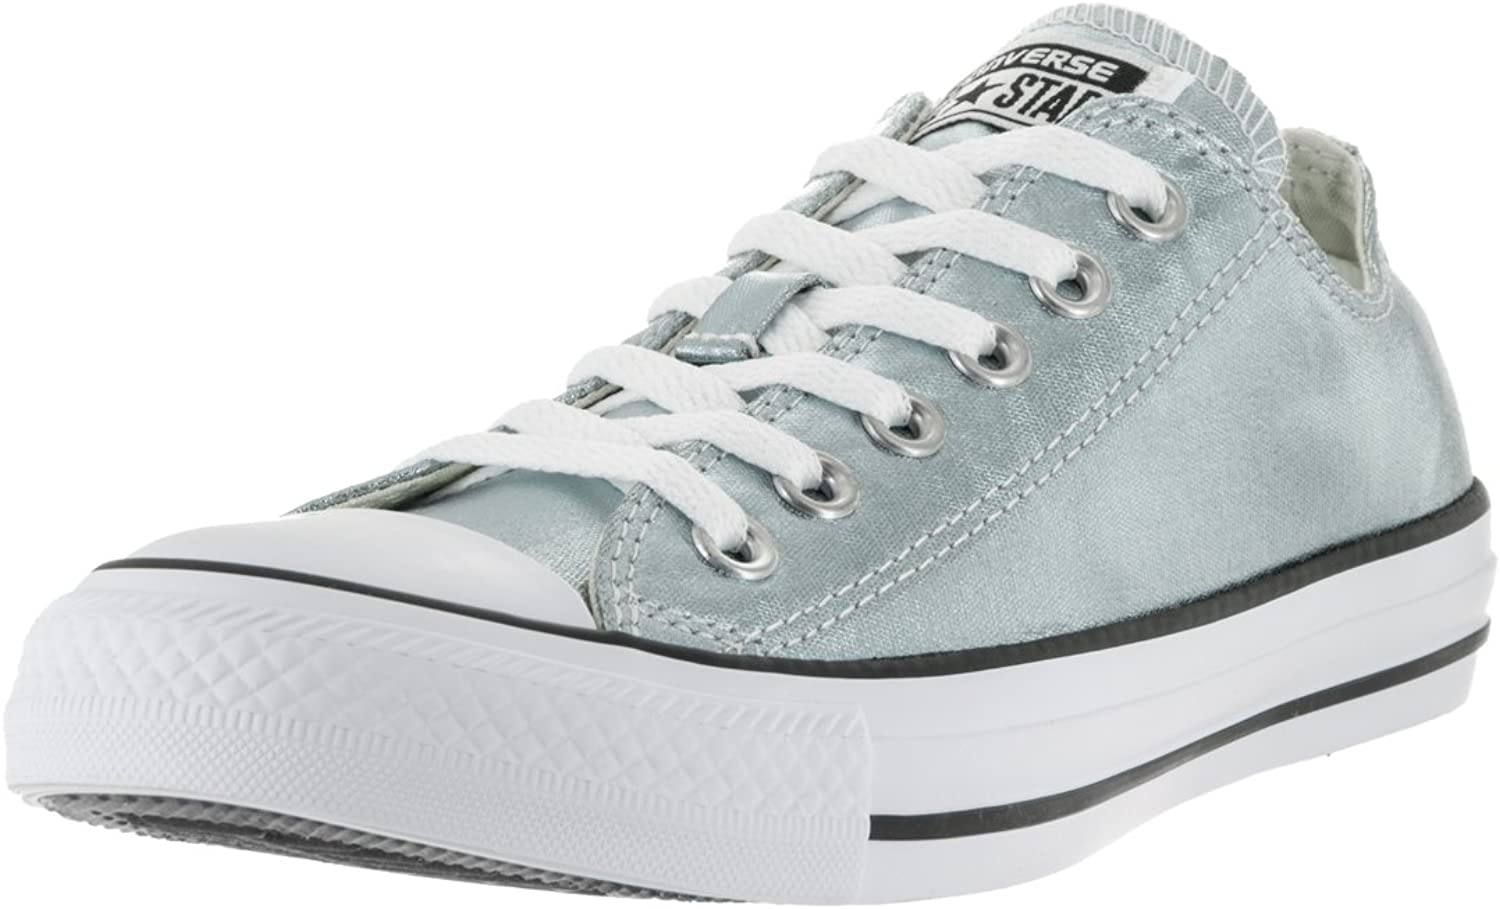 Converse Chuck Taylor Ox Metallic Athletic shoes